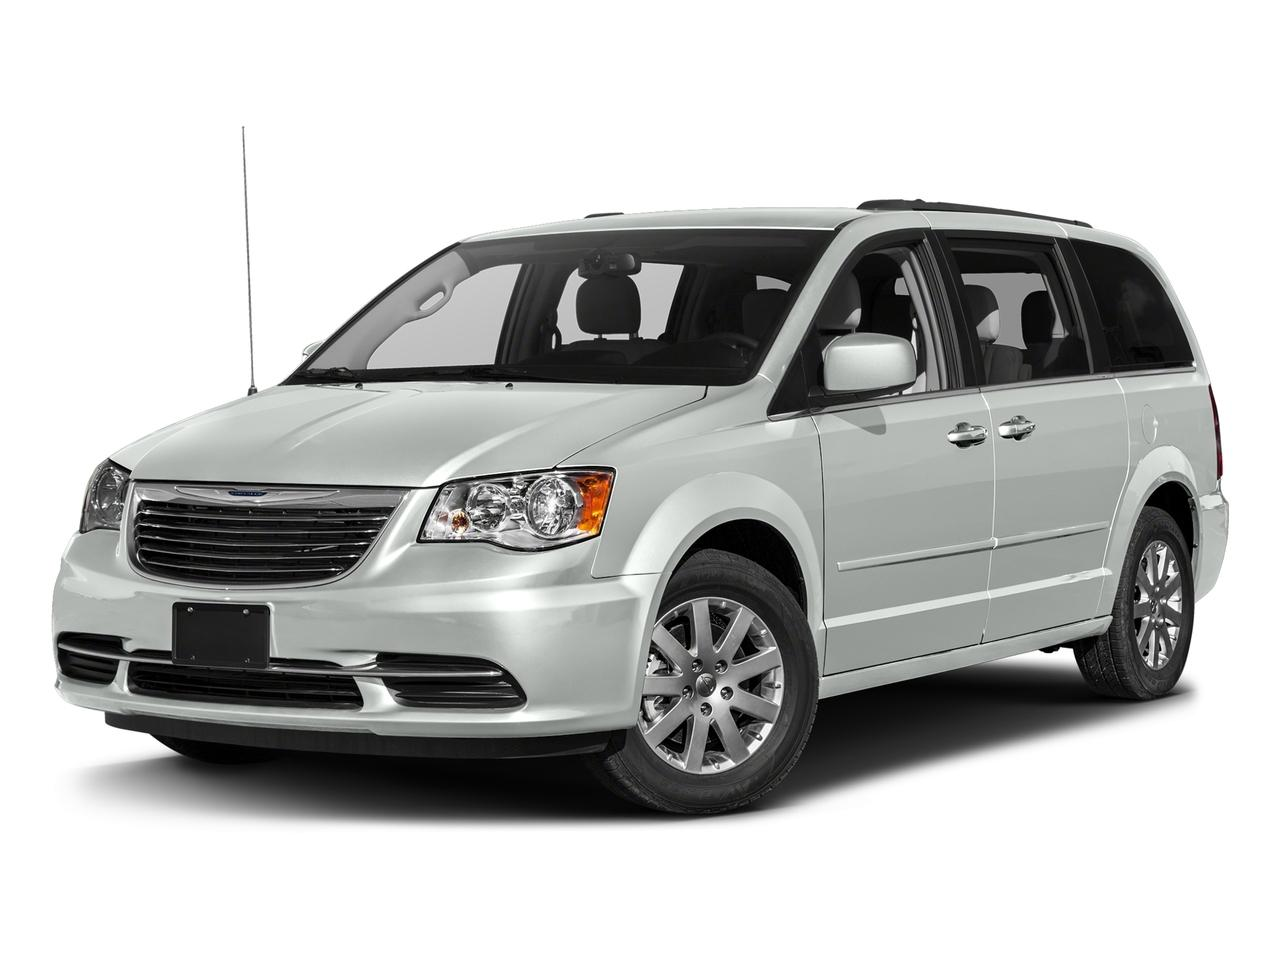 2016 Chrysler Town & Country Vehicle Photo in Joliet, IL 60435